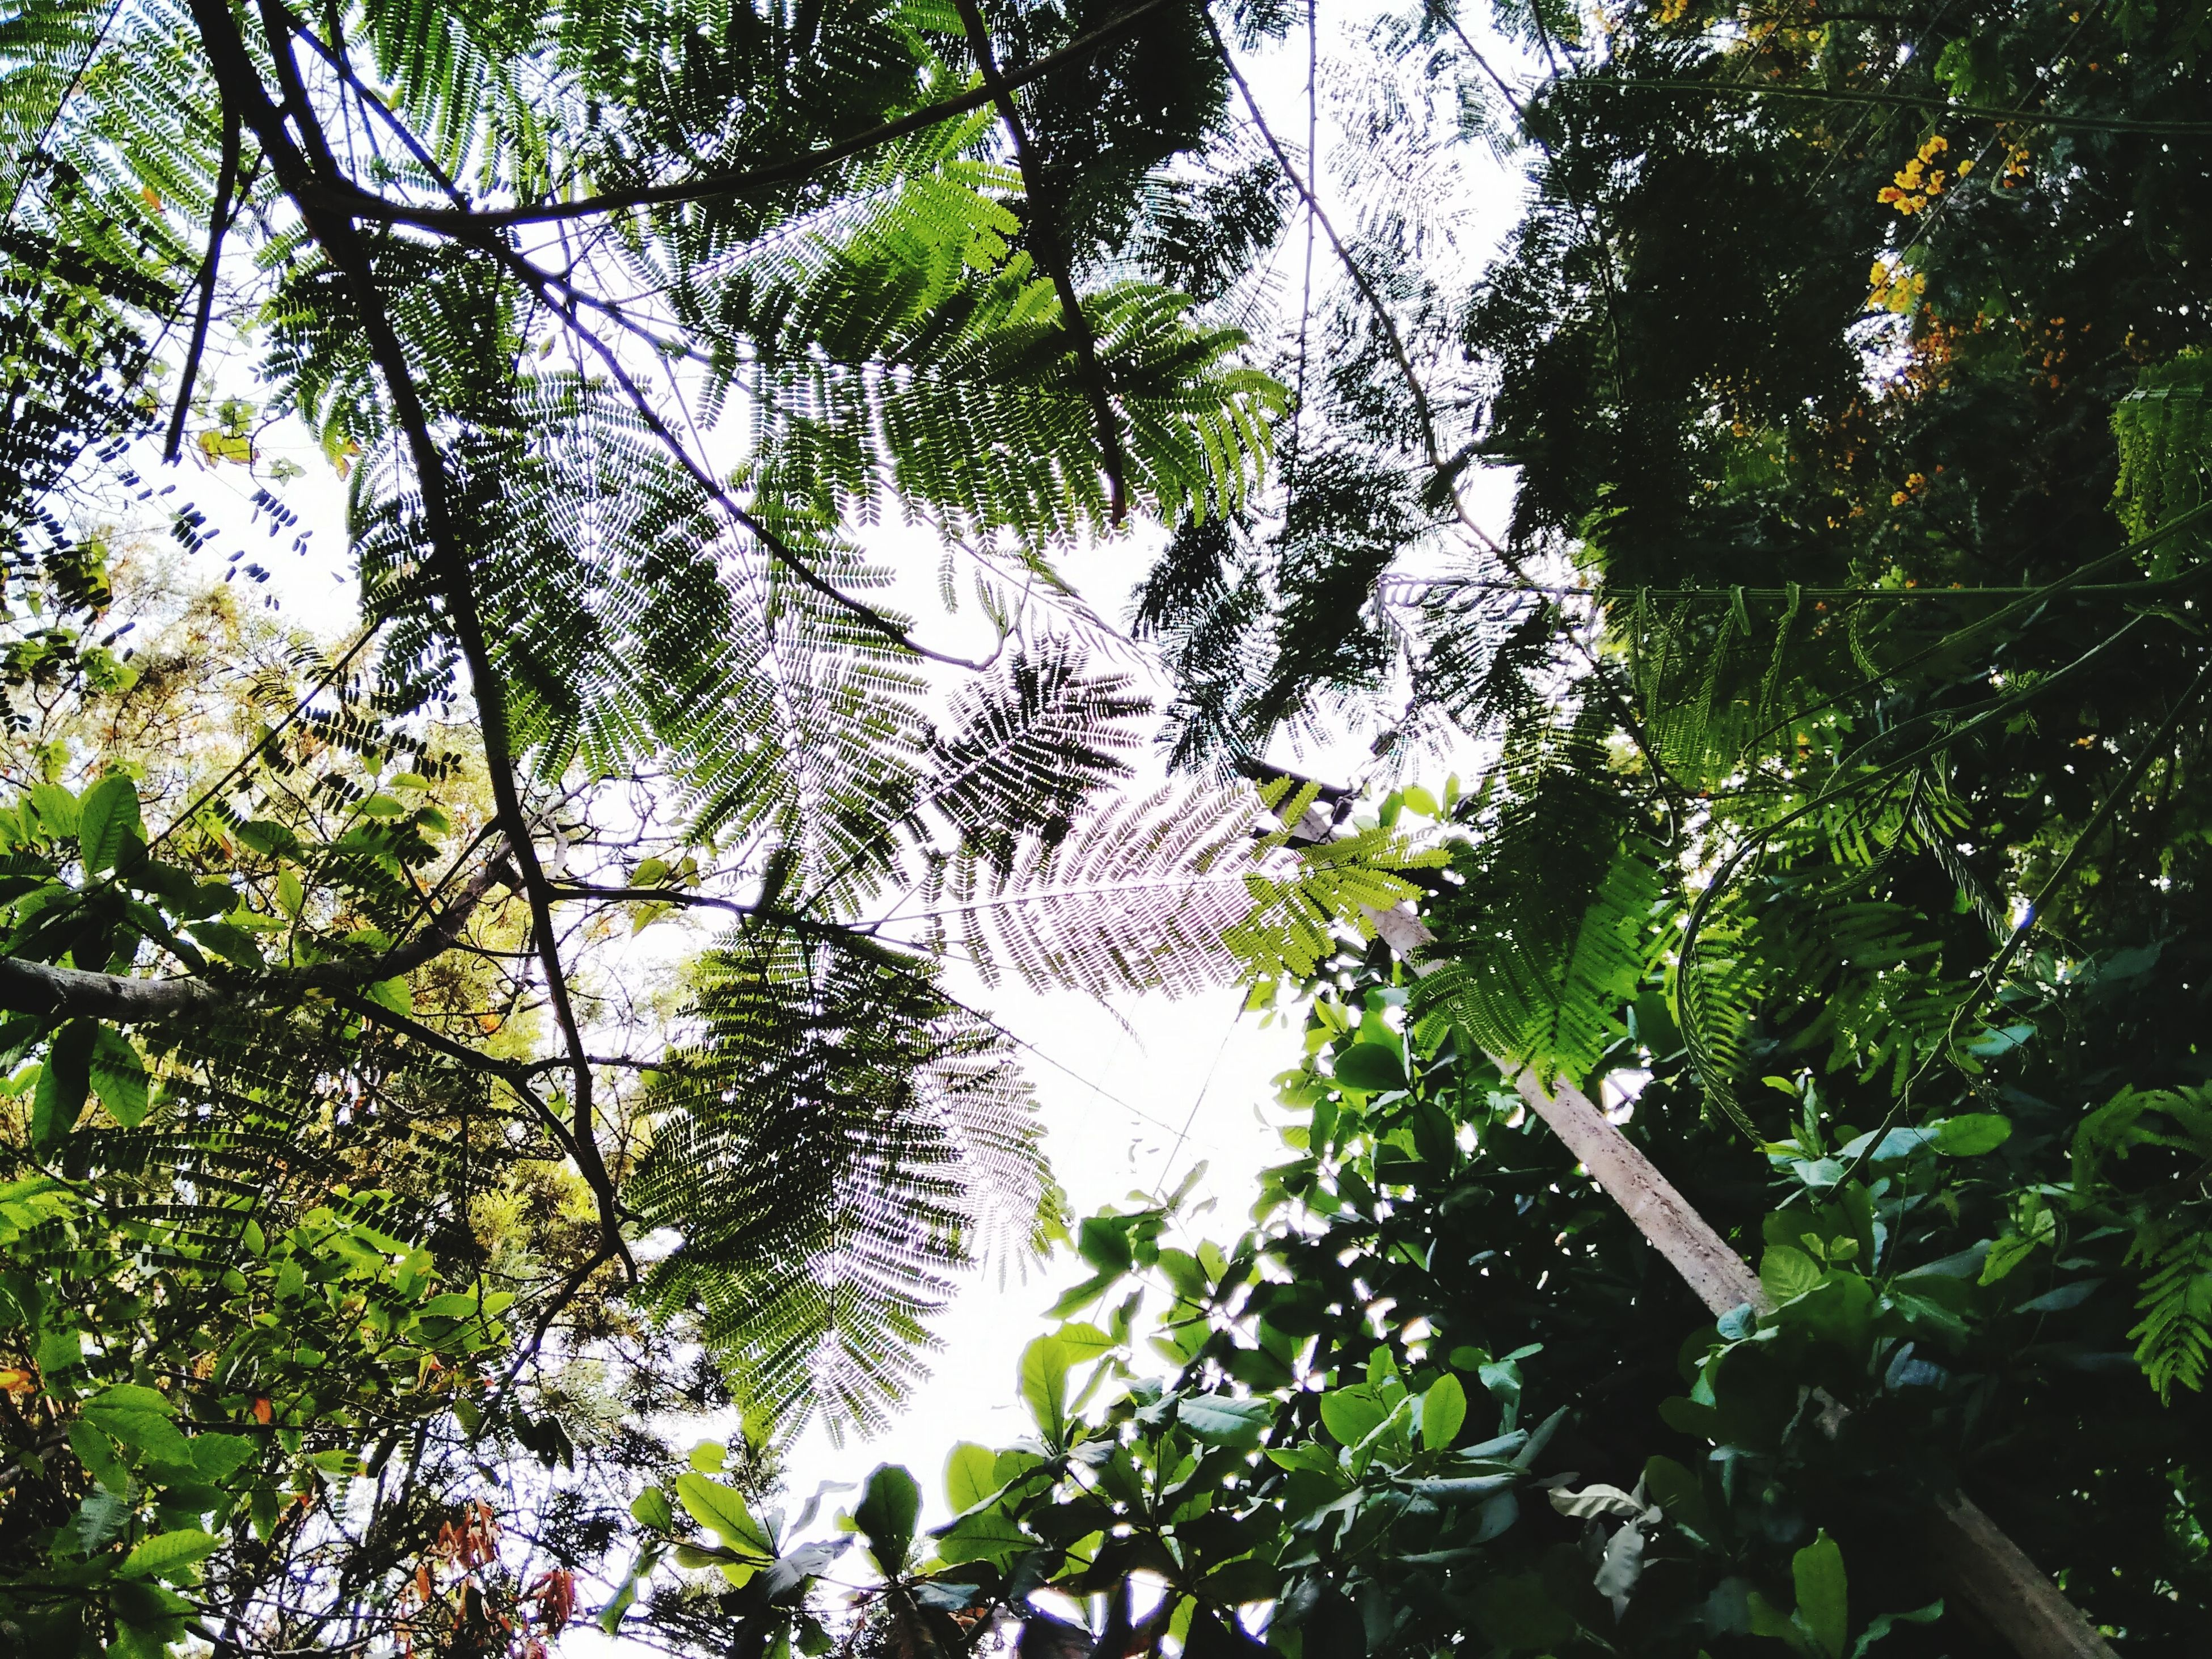 tree, low angle view, growth, branch, nature, tranquility, green color, forest, beauty in nature, leaf, lush foliage, day, tree trunk, outdoors, no people, sky, scenics, tranquil scene, green, tall - high